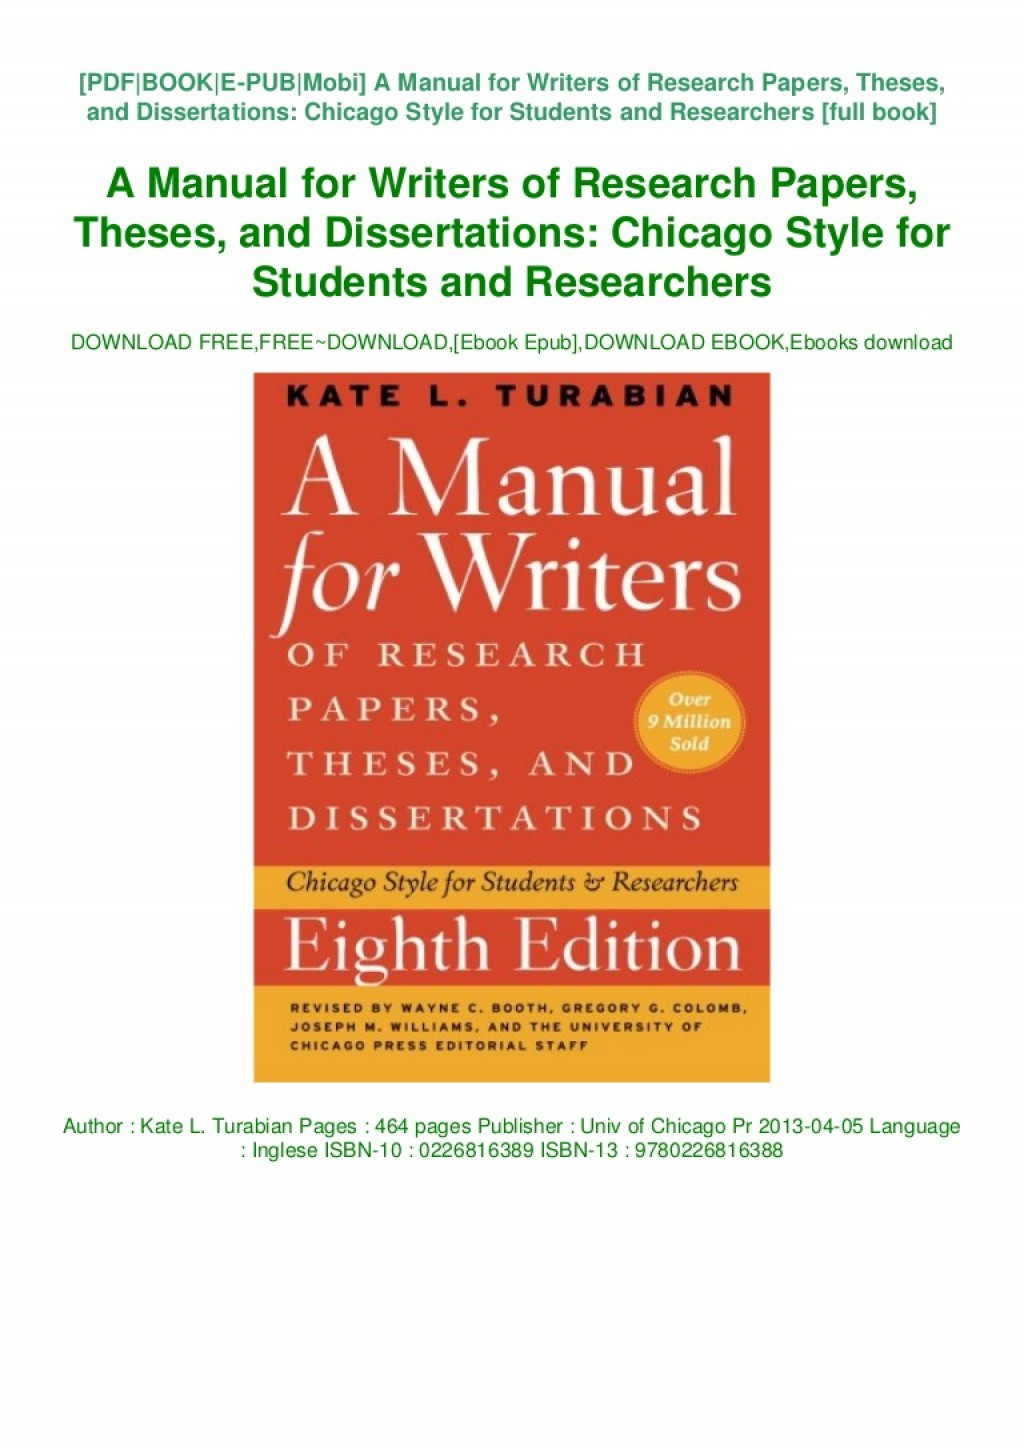 005 Book Manual For Writers Of Research Papers Theses And Thumbnail Paper Dissertations Eighth Phenomenal A Edition Pdf Large